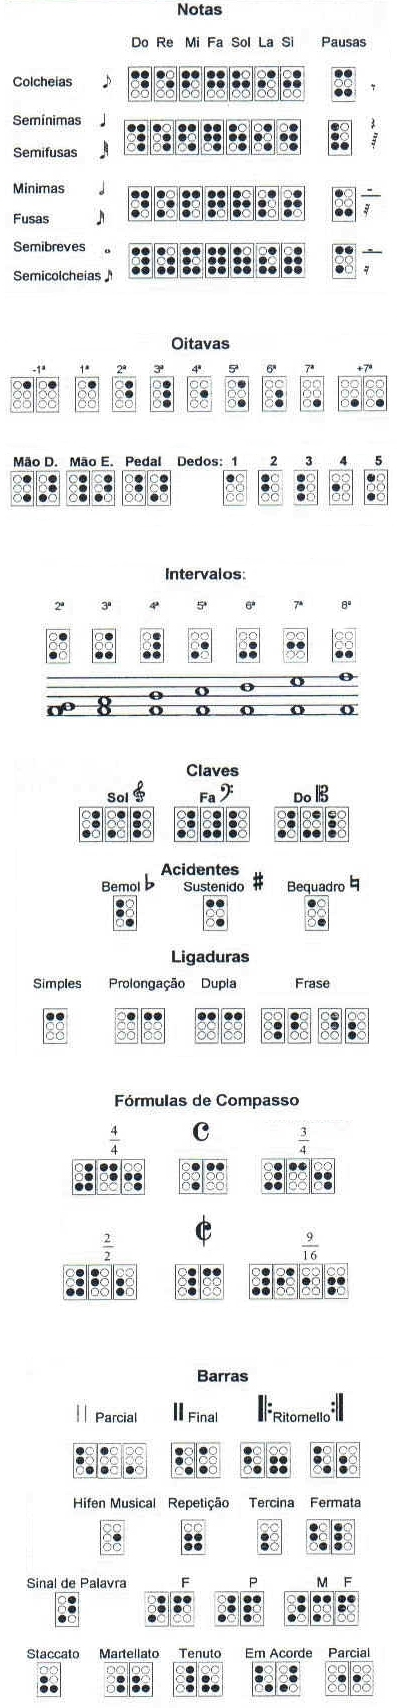 Símbolos da grafia musical braille